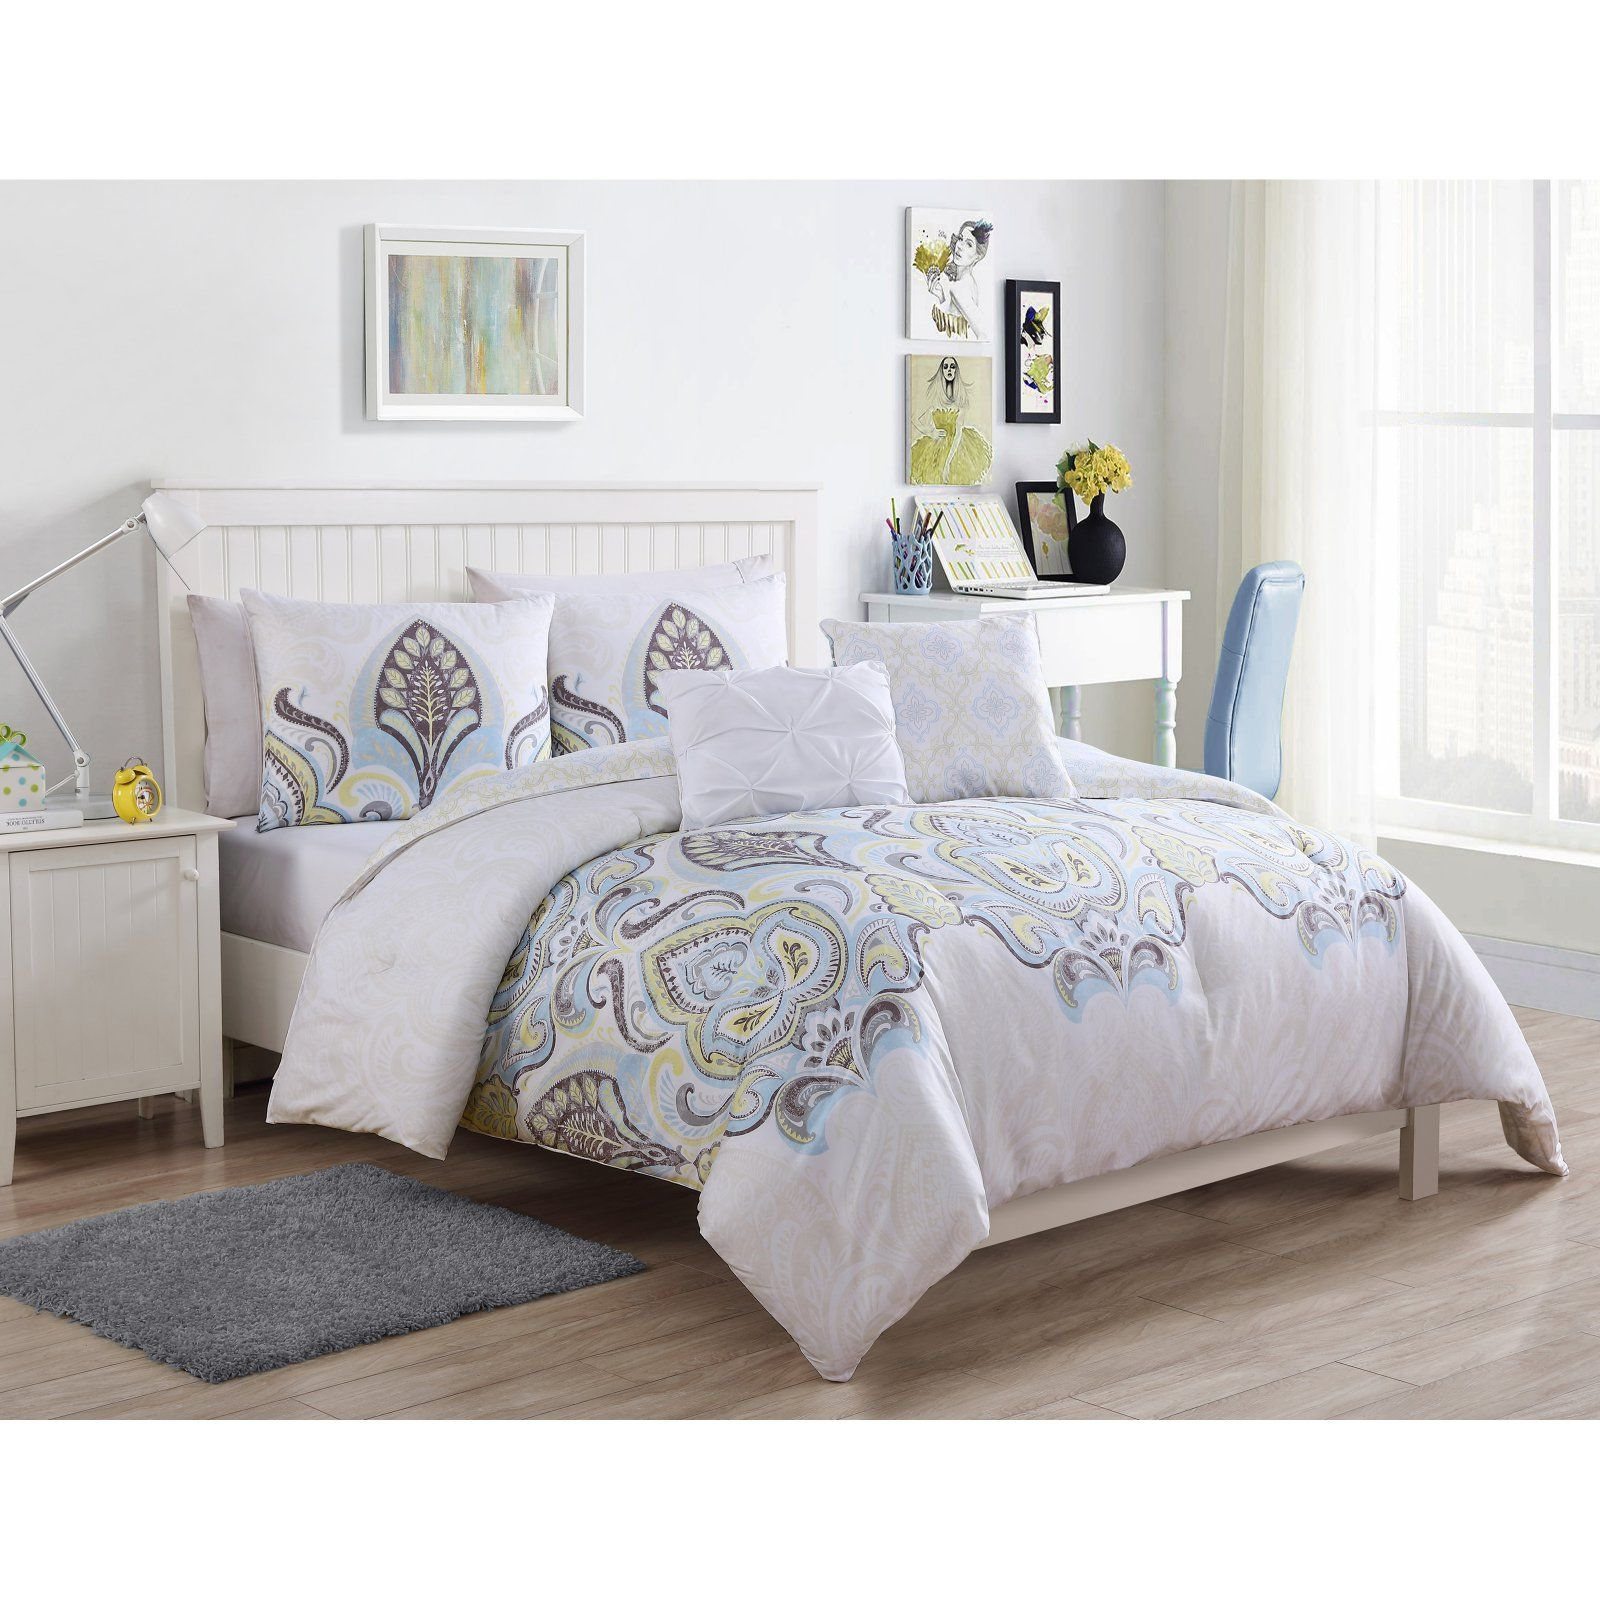 Shazia Comforter Set By Vcny Size Twin Comforter Sets